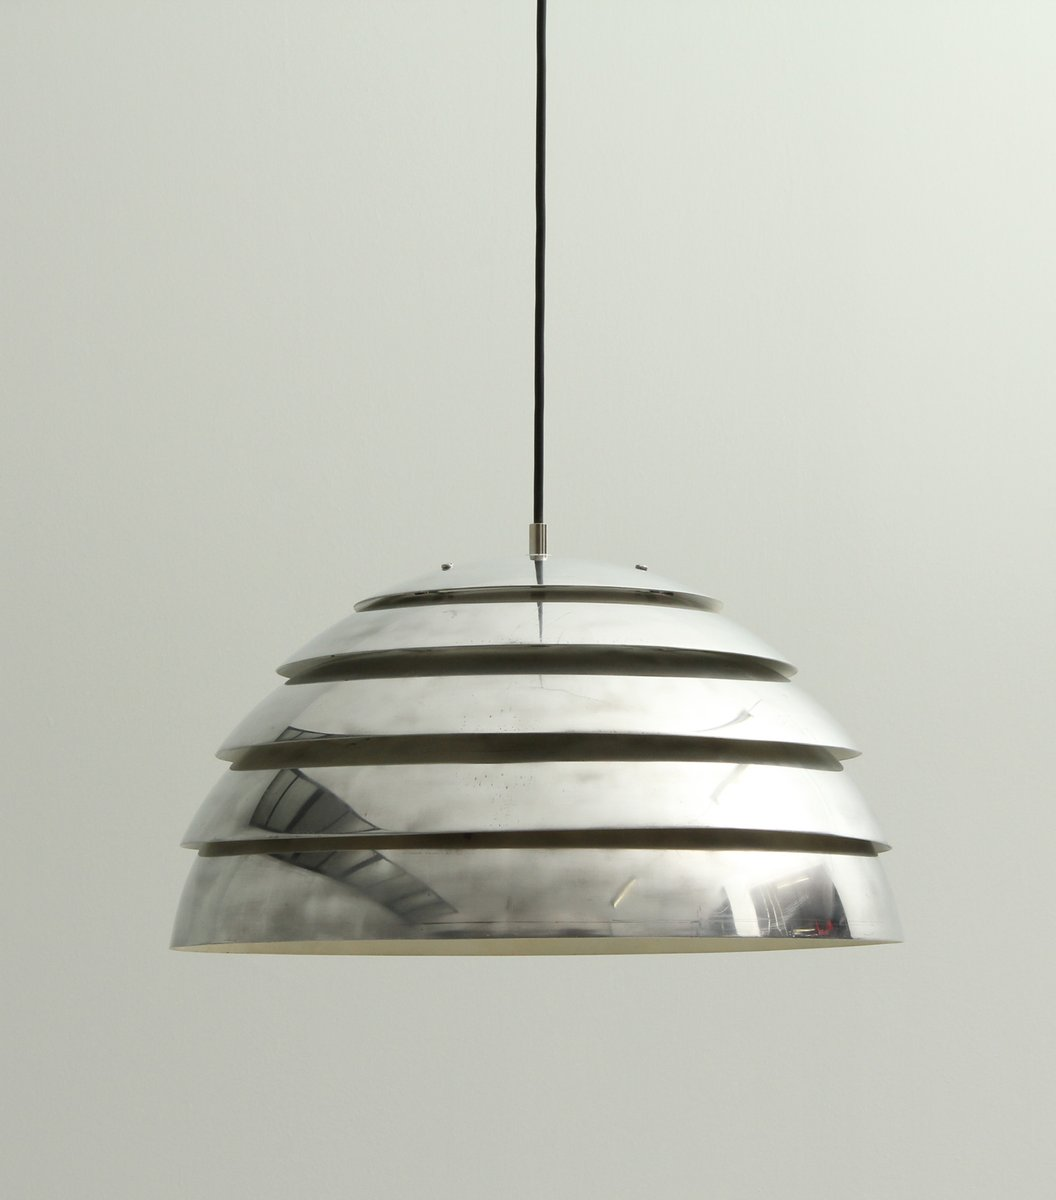 Dome pendant lamp by hans agne jakobsson for markaryd 1960s for dome pendant lamp by hans agne jakobsson for markaryd 1960s for sale at pamono aloadofball Gallery